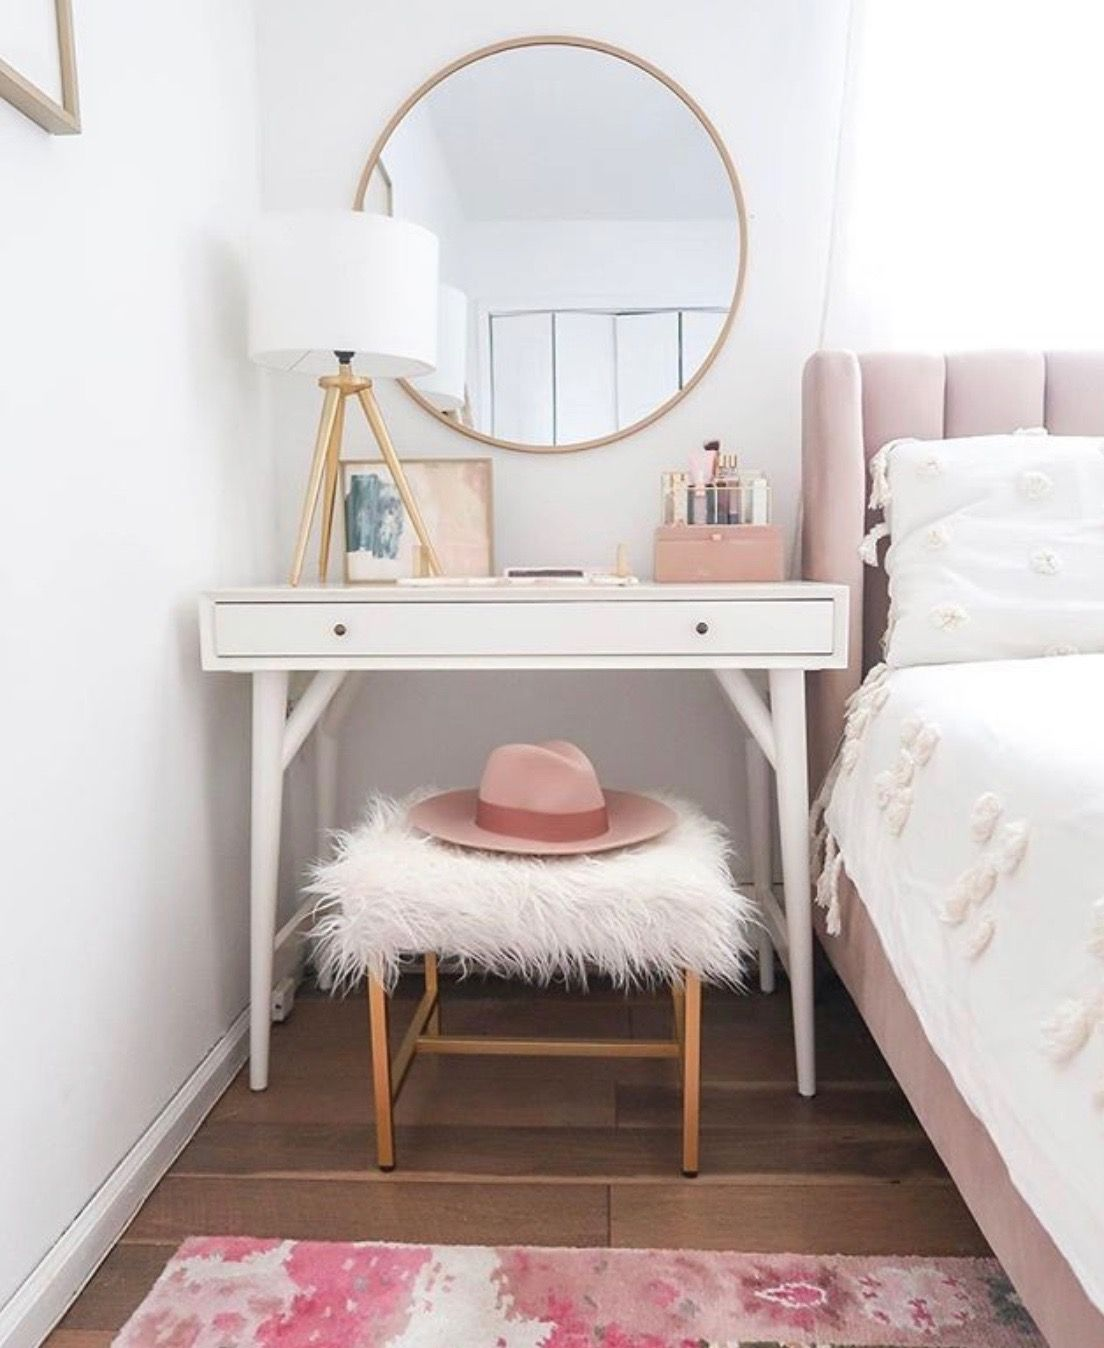 Simple Small Living Room Interiordesign: Pin By Jill Aponte On Girls Room